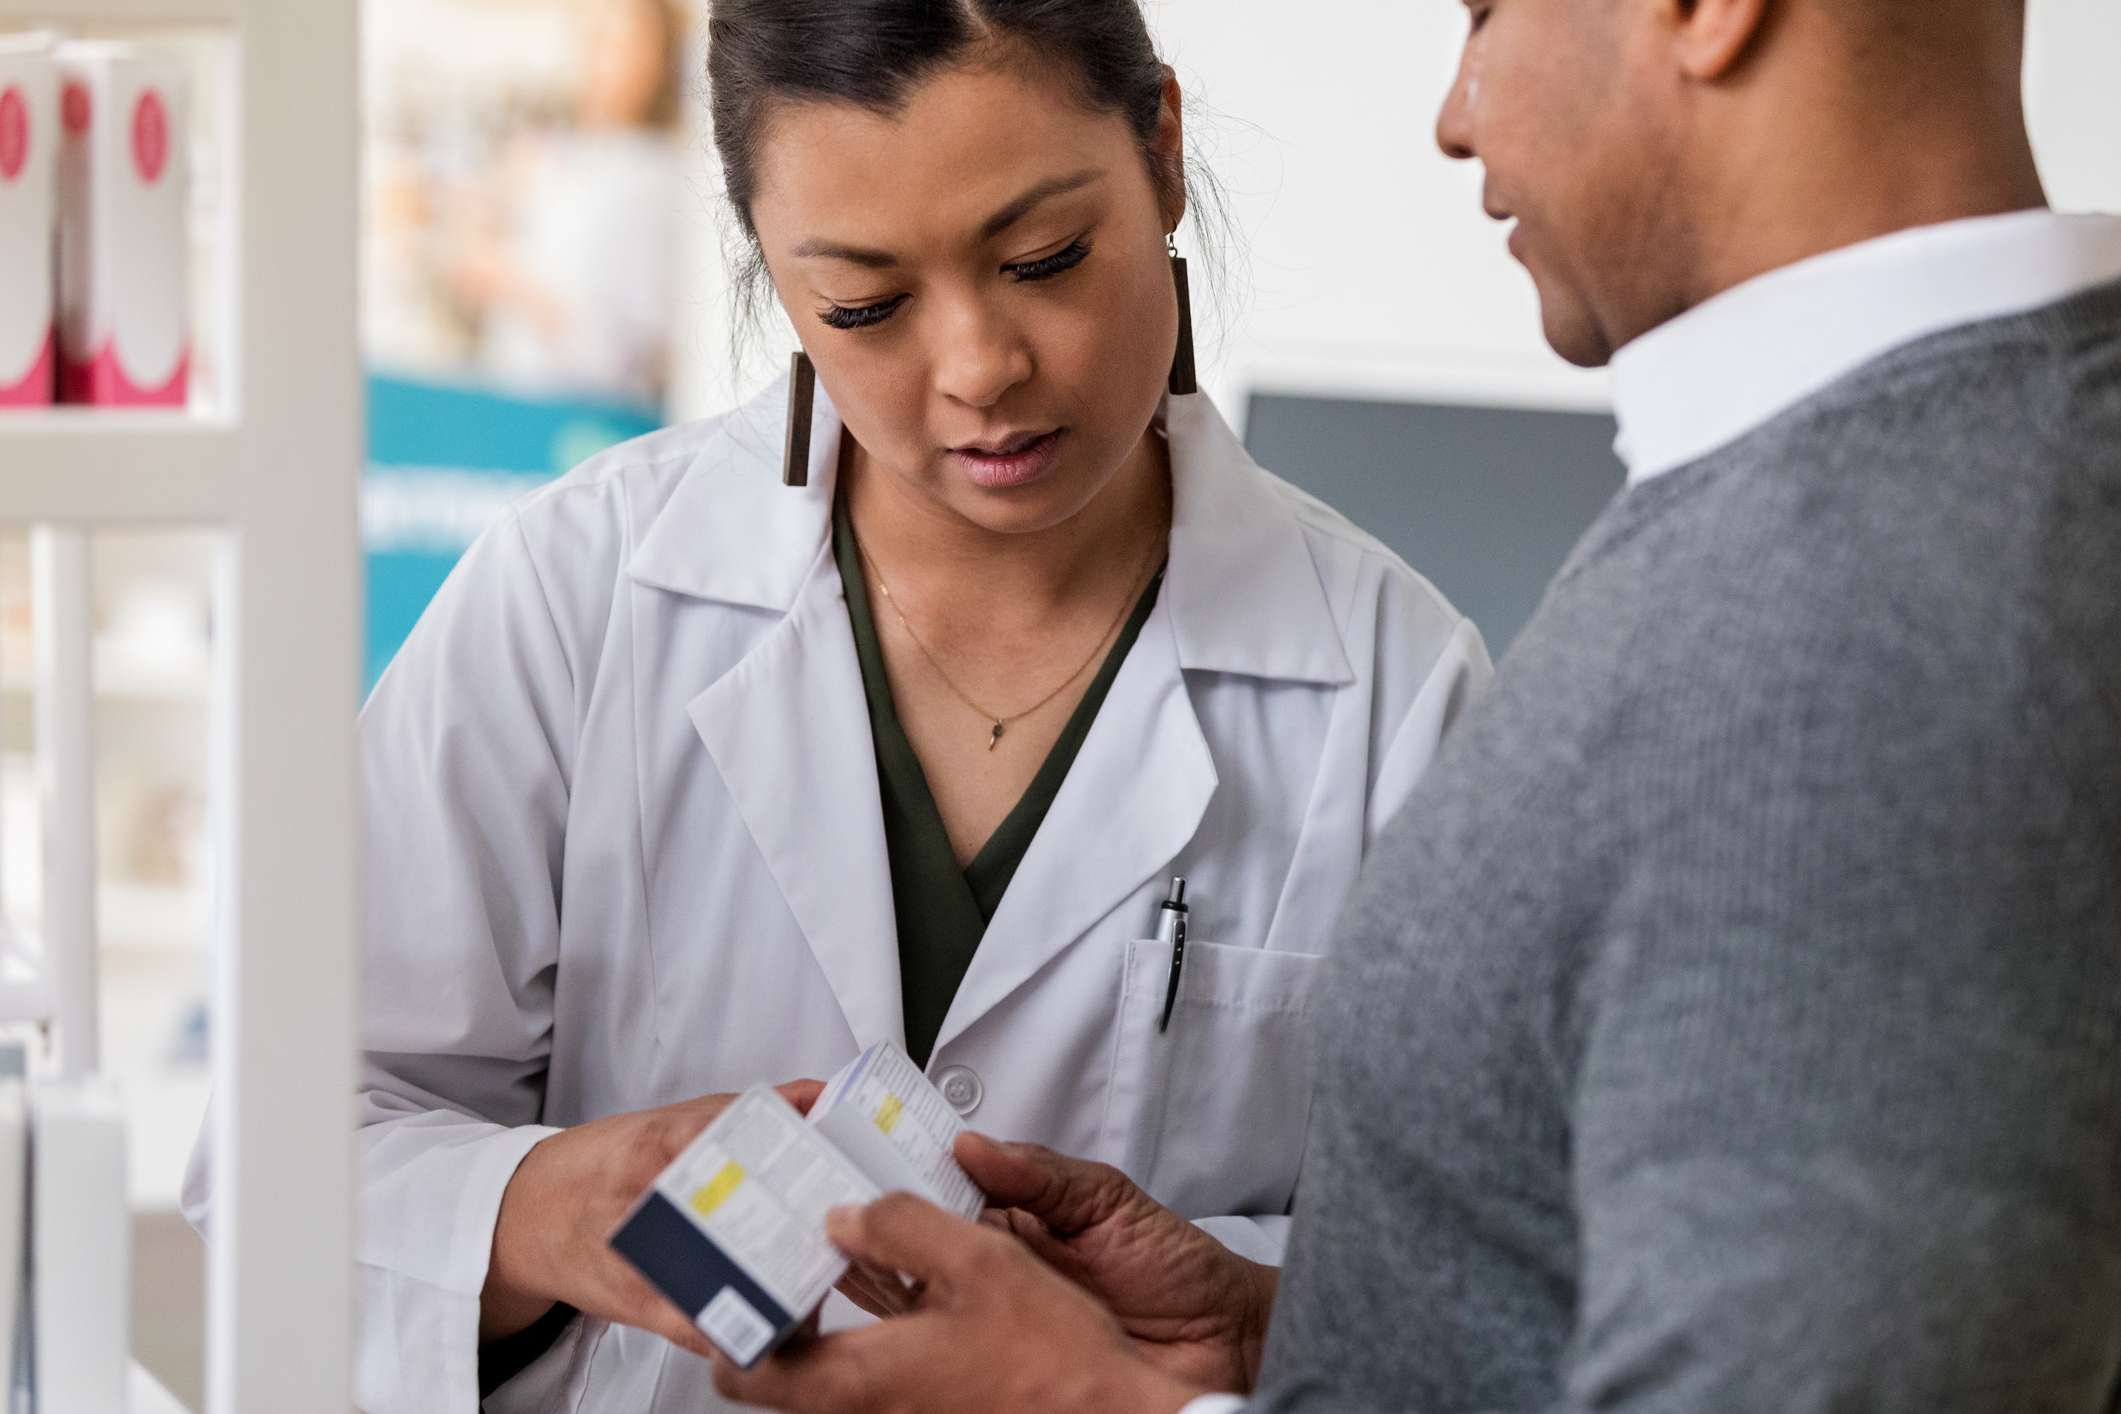 Pharmacist and client discuss medications